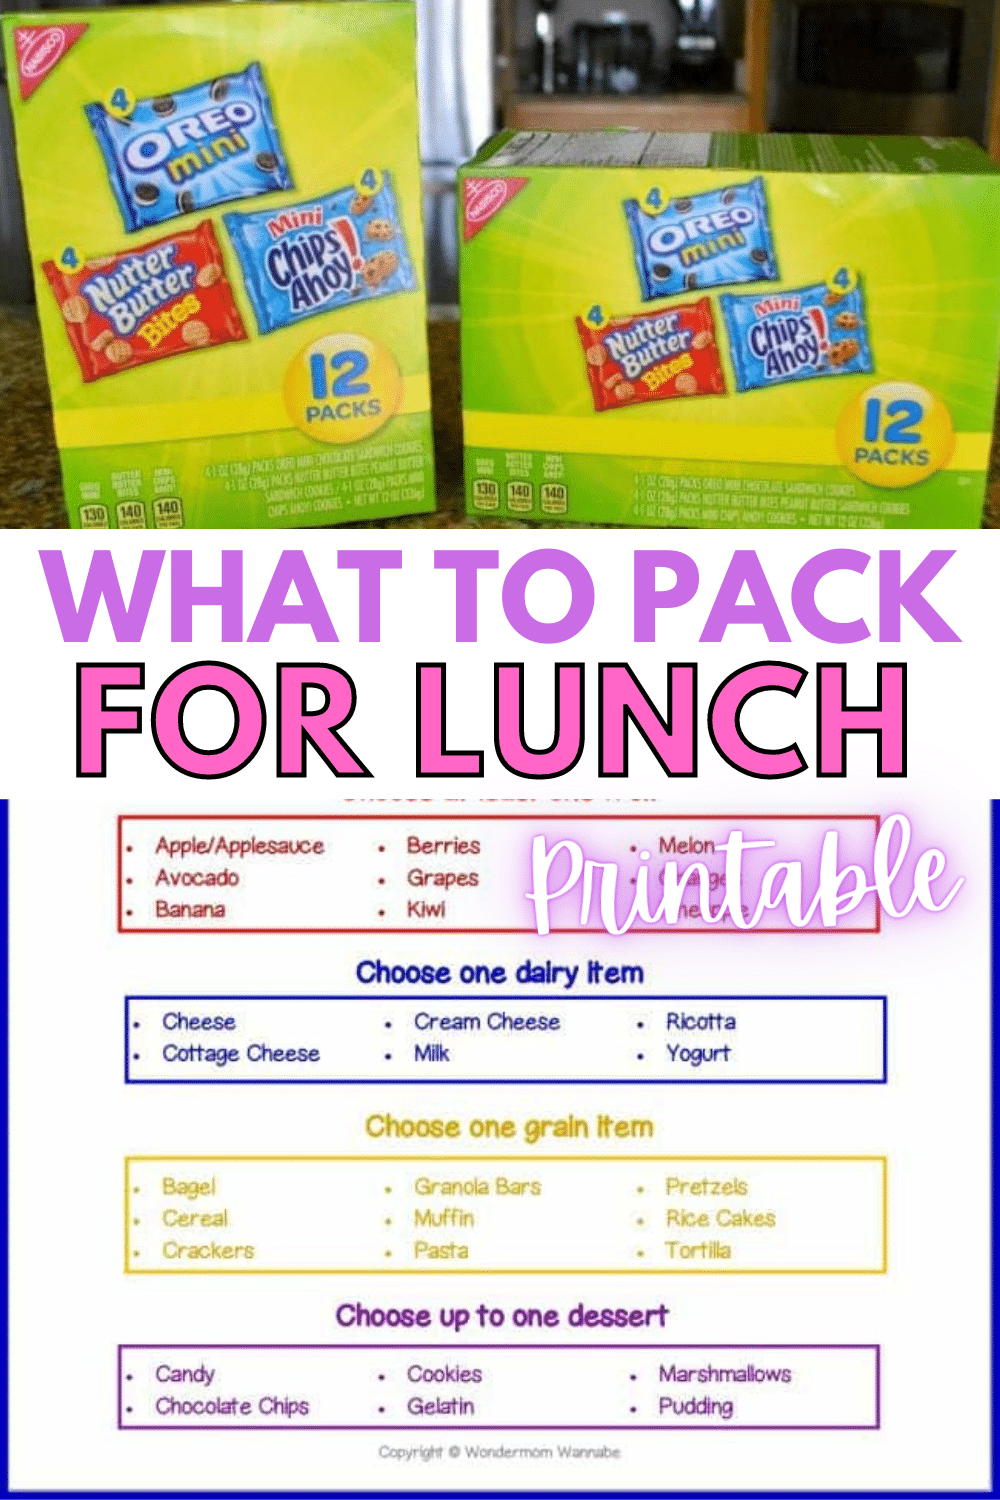 Use this What to Pack for Lunch printable sheet to help your kids make smart food choices on their own and learn an important life skill. #freeprintable #forkids #whattopackforlunch #parentingadvice via @wondermomwannab